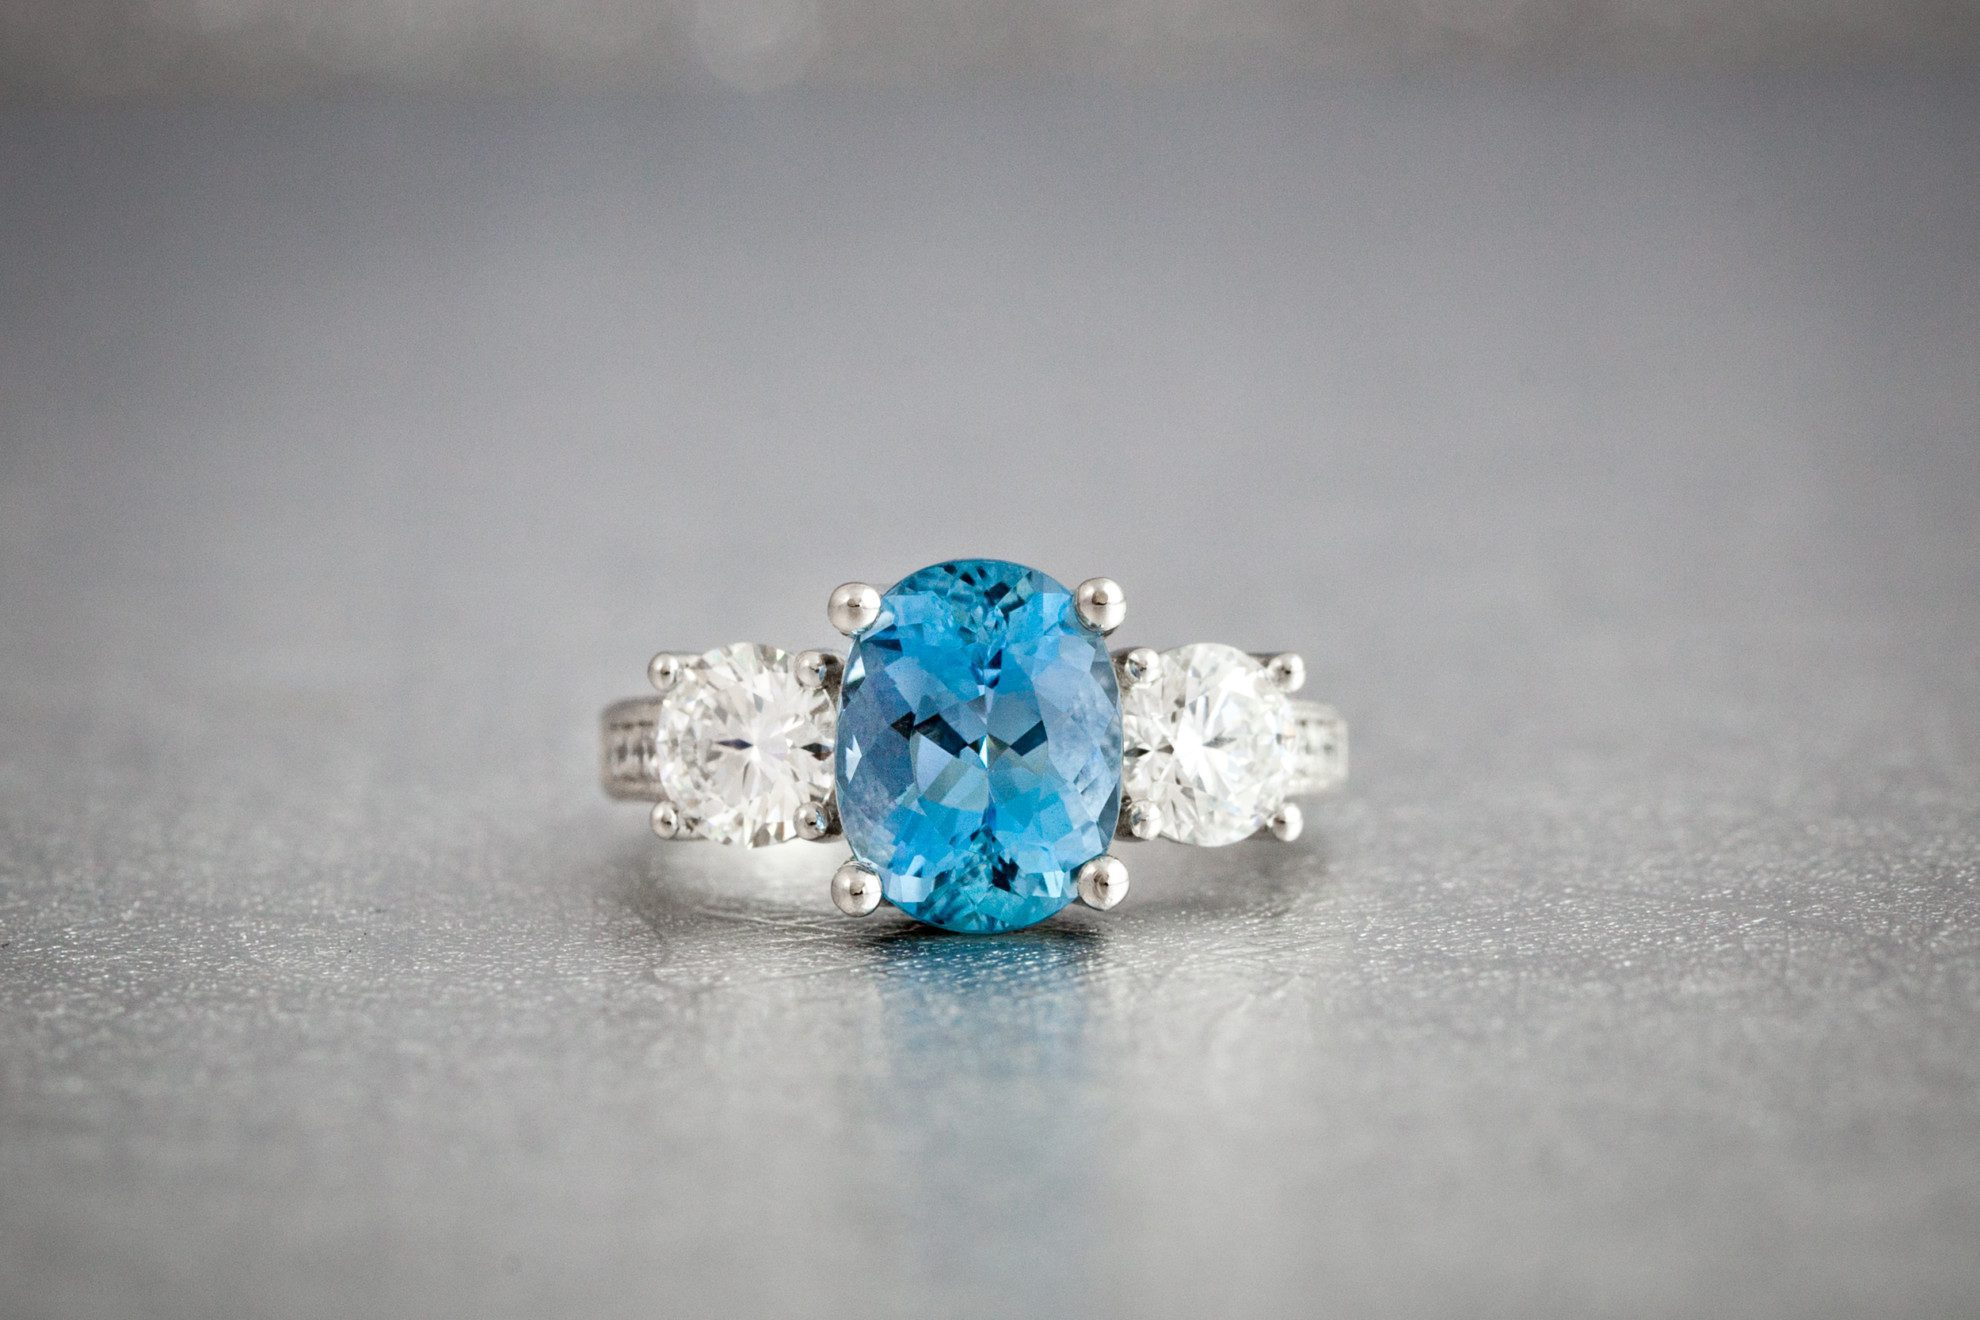 for colored baguette mm engagement used aquamarines created the marquise lab set international sapphire rings ring gemstones citrine with custommade bridal your aquamarine best cut permission and ruby heart claddagh article